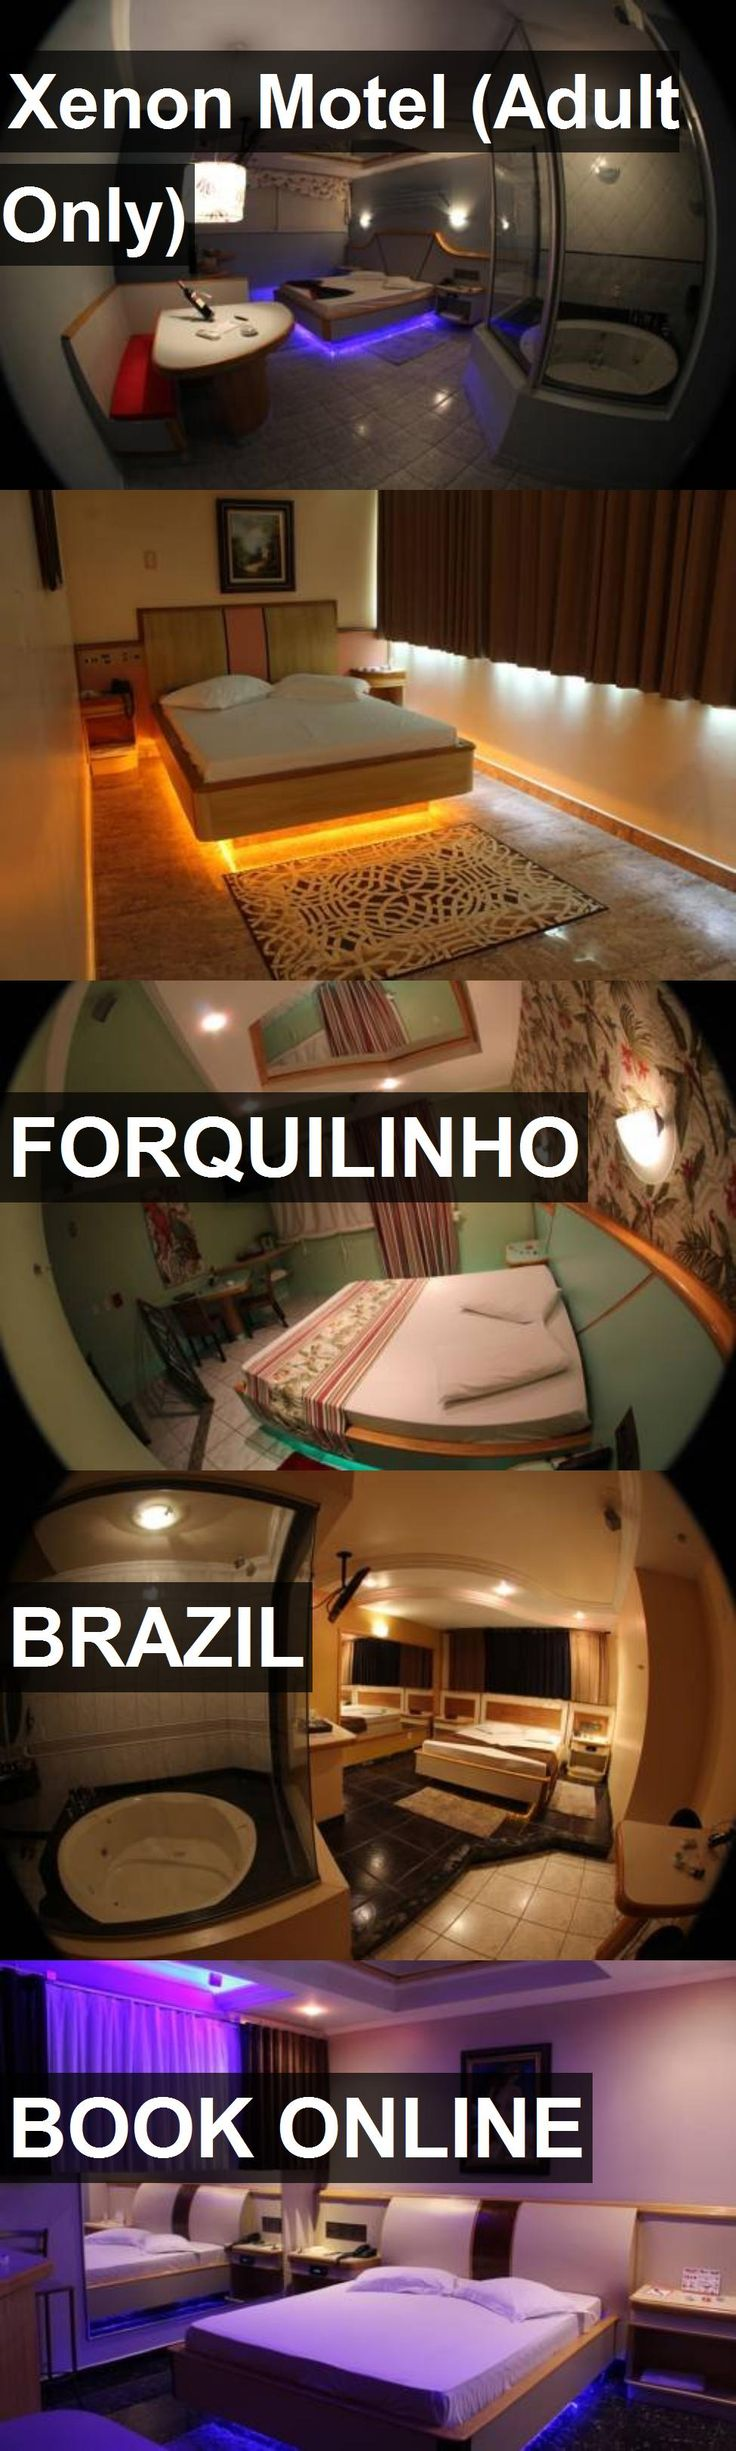 Hotel Xenon Motel (Adult Only) in Forquilinho, Brazil. For more information, photos, reviews and best prices please follow the link. #Brazil #Forquilinho #travel #vacation #hotel